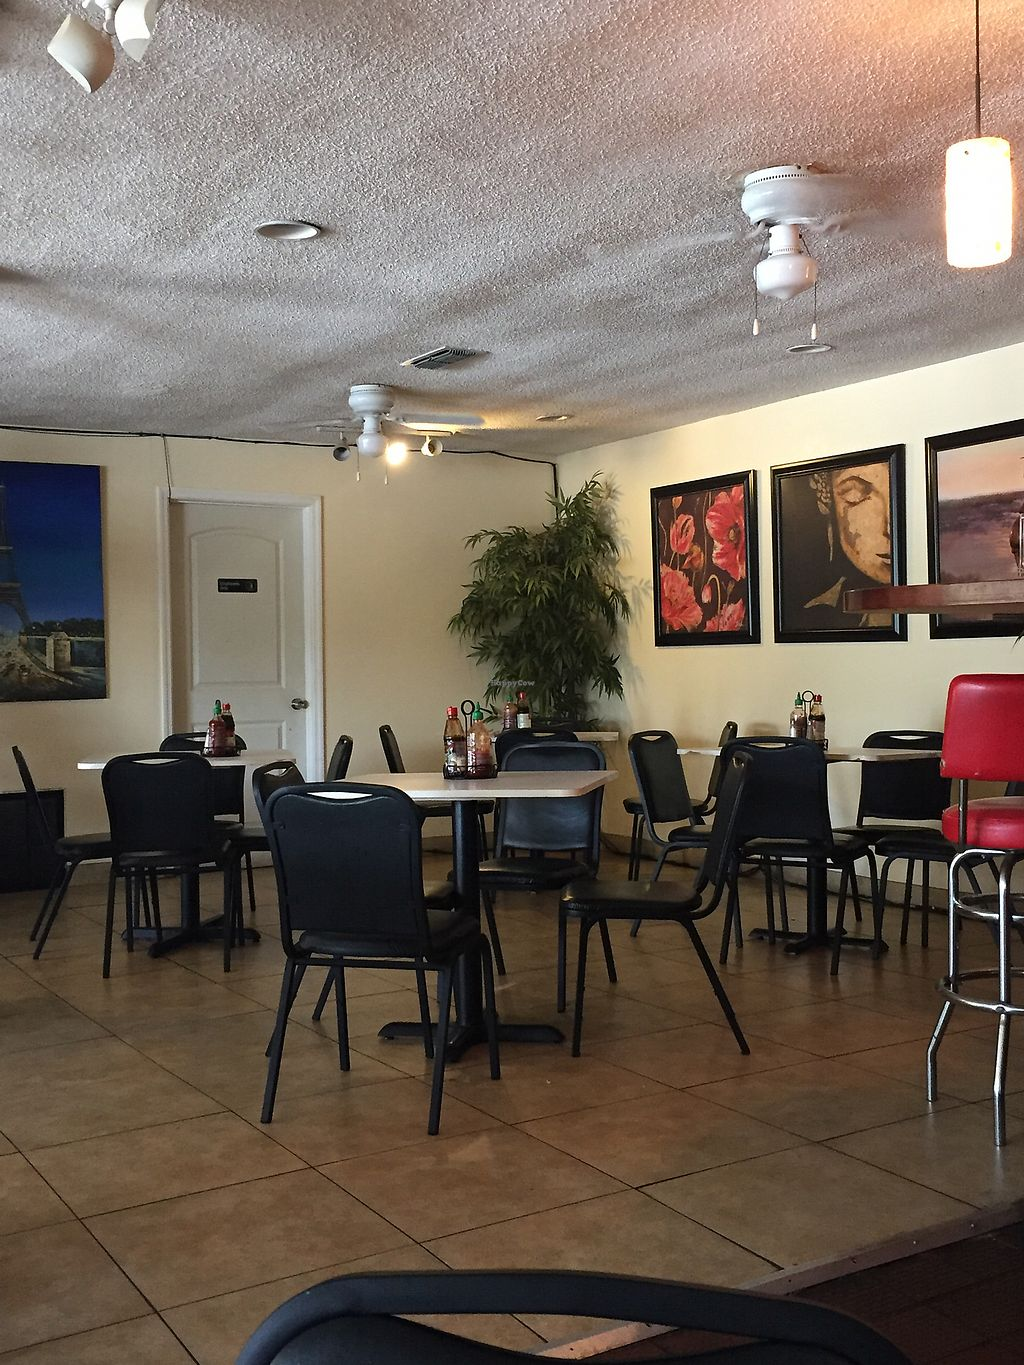 """Photo of Saigon Bistro   by <a href=""""/members/profile/mindhy"""">mindhy</a> <br/>inside restaurant  <br/> September 1, 2017  - <a href='/contact/abuse/image/77695/299736'>Report</a>"""